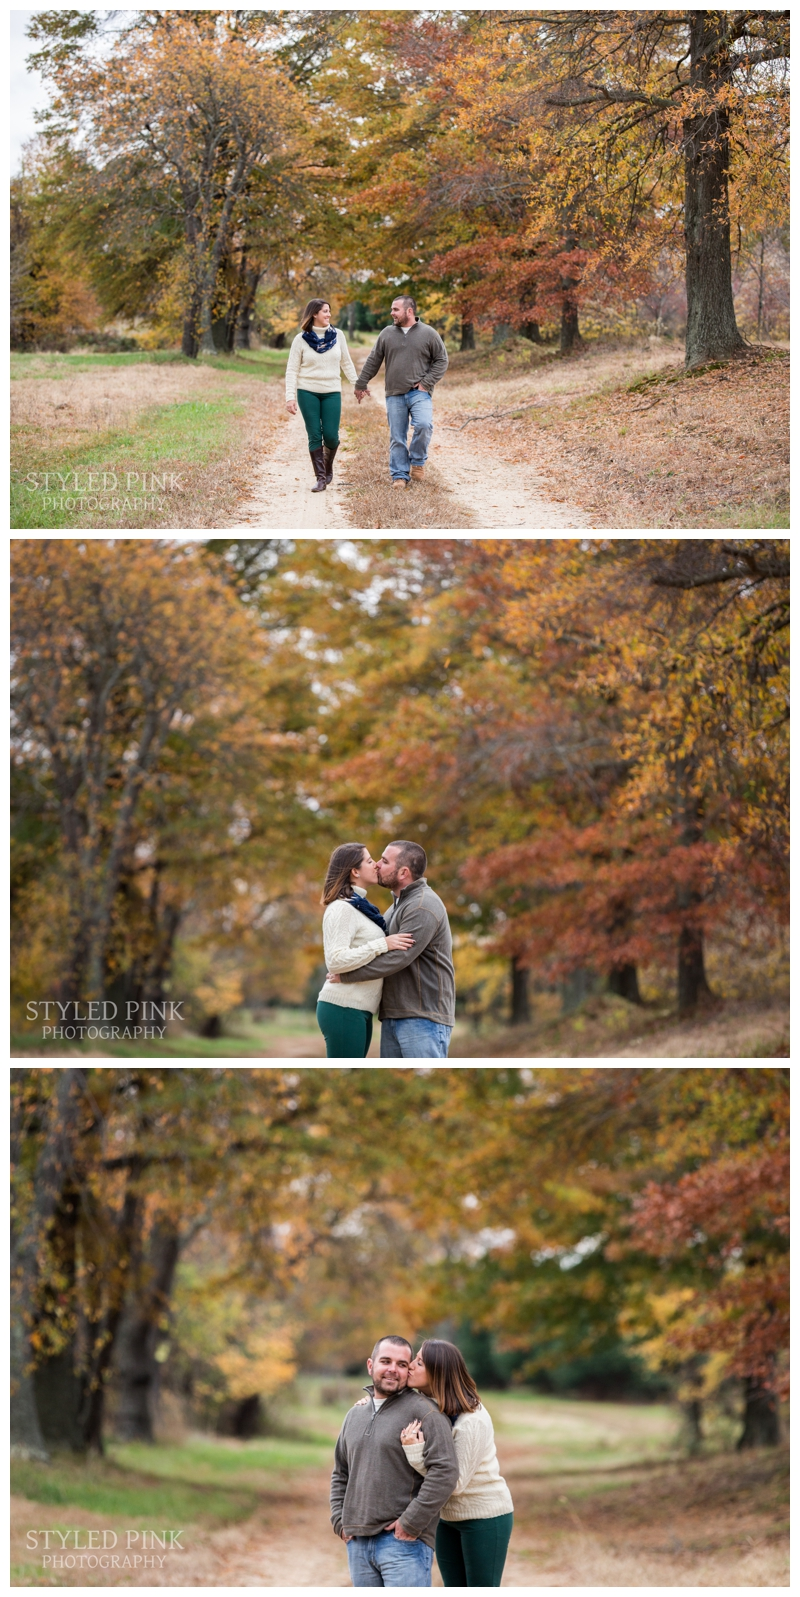 styled-pink-columbus-nj-engagement-4